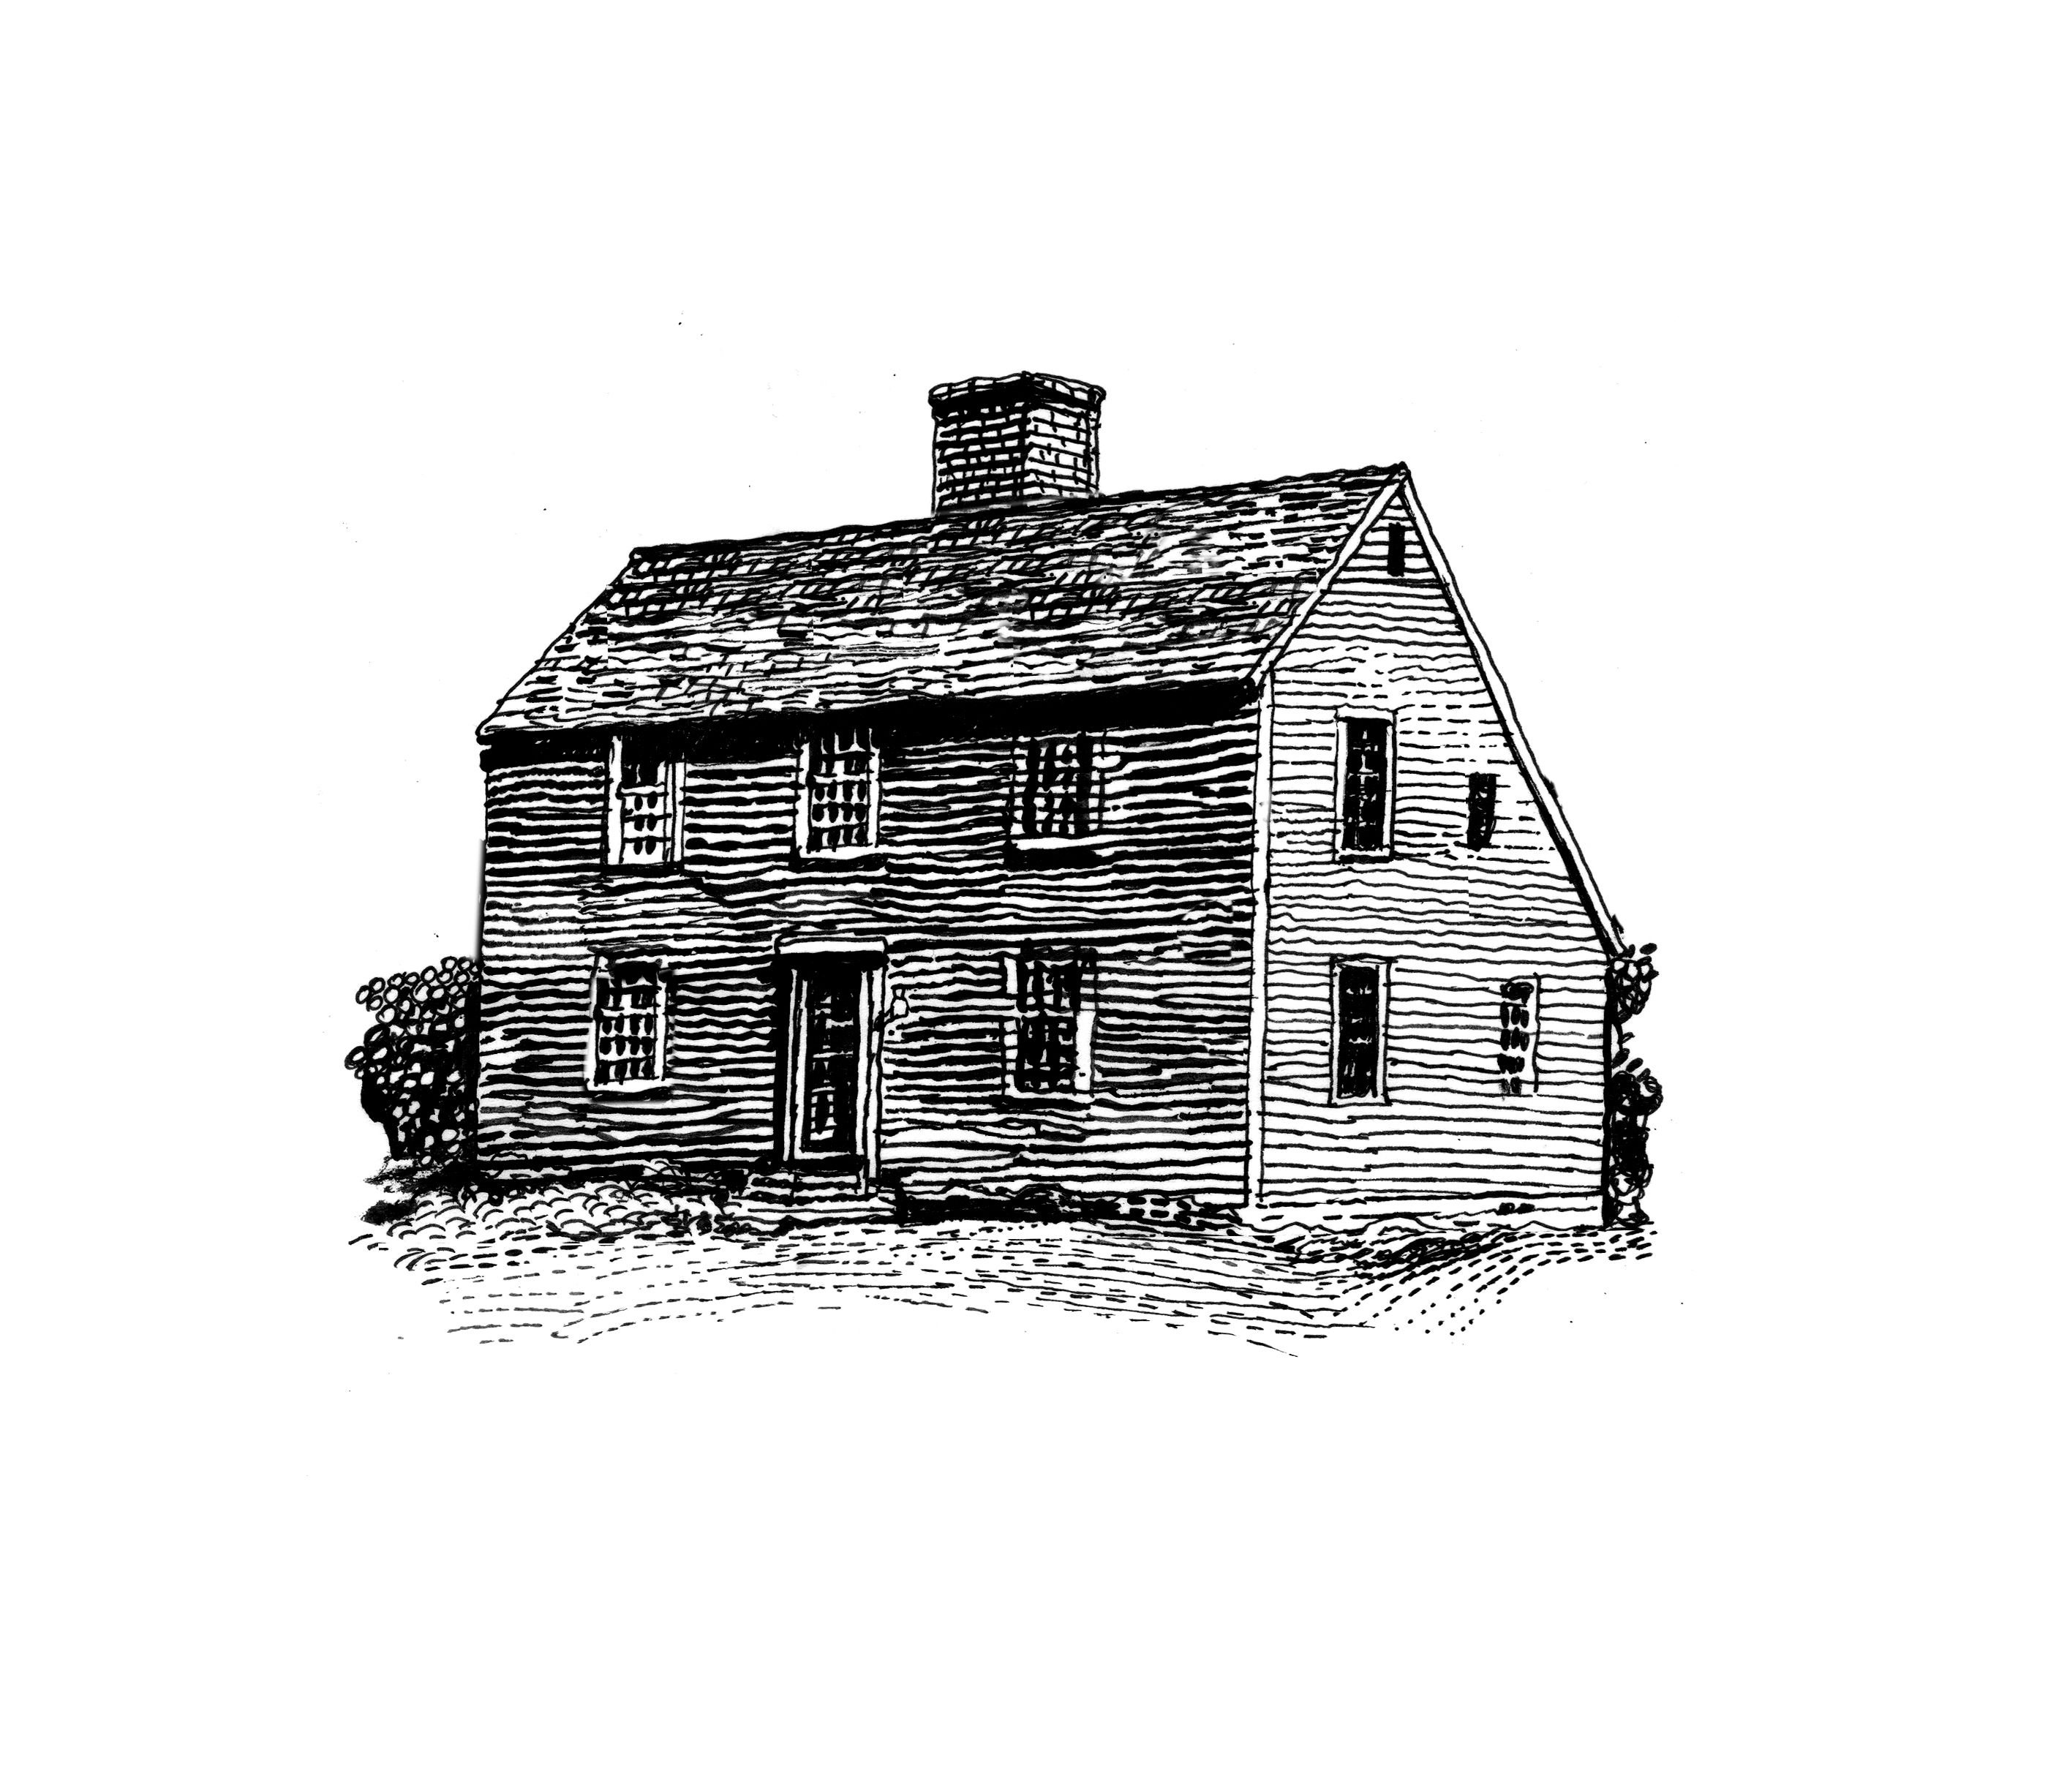 A field guide to local architecture - The Boston Globe on gambrel roof home floor plans, gable roof home designs, gambrel roof framing designs, flat roof home designs,